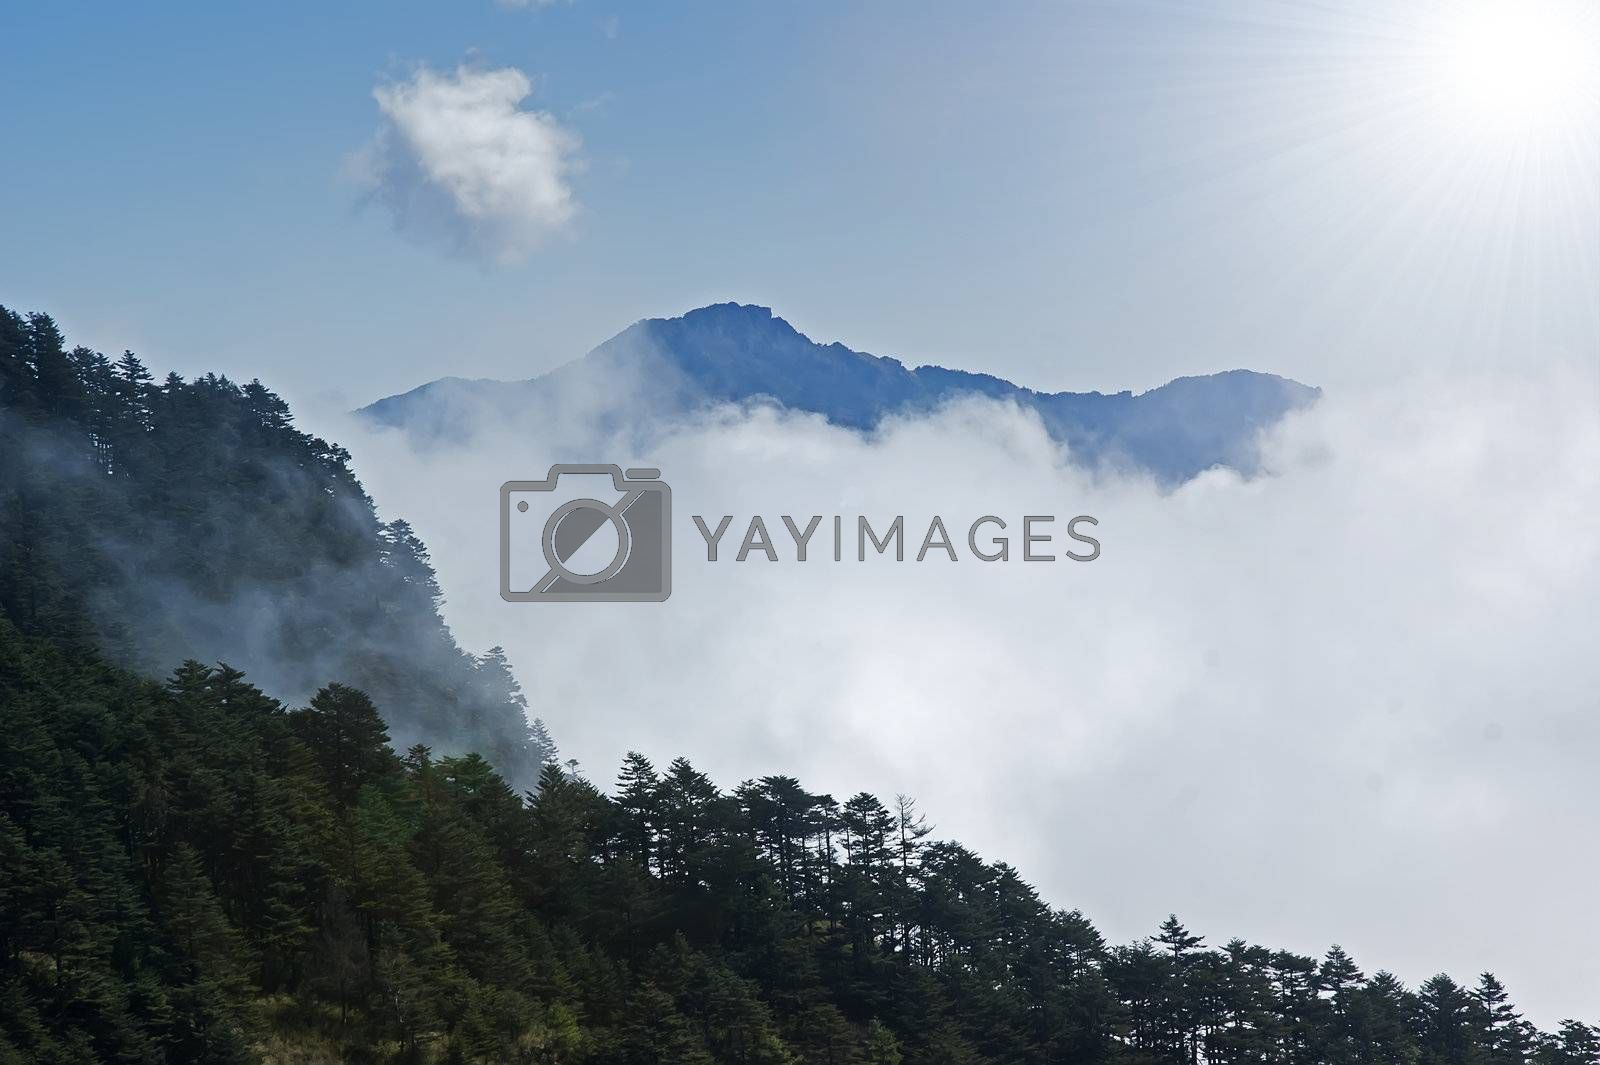 This photo was taken in China Shennongjia, in late autumn